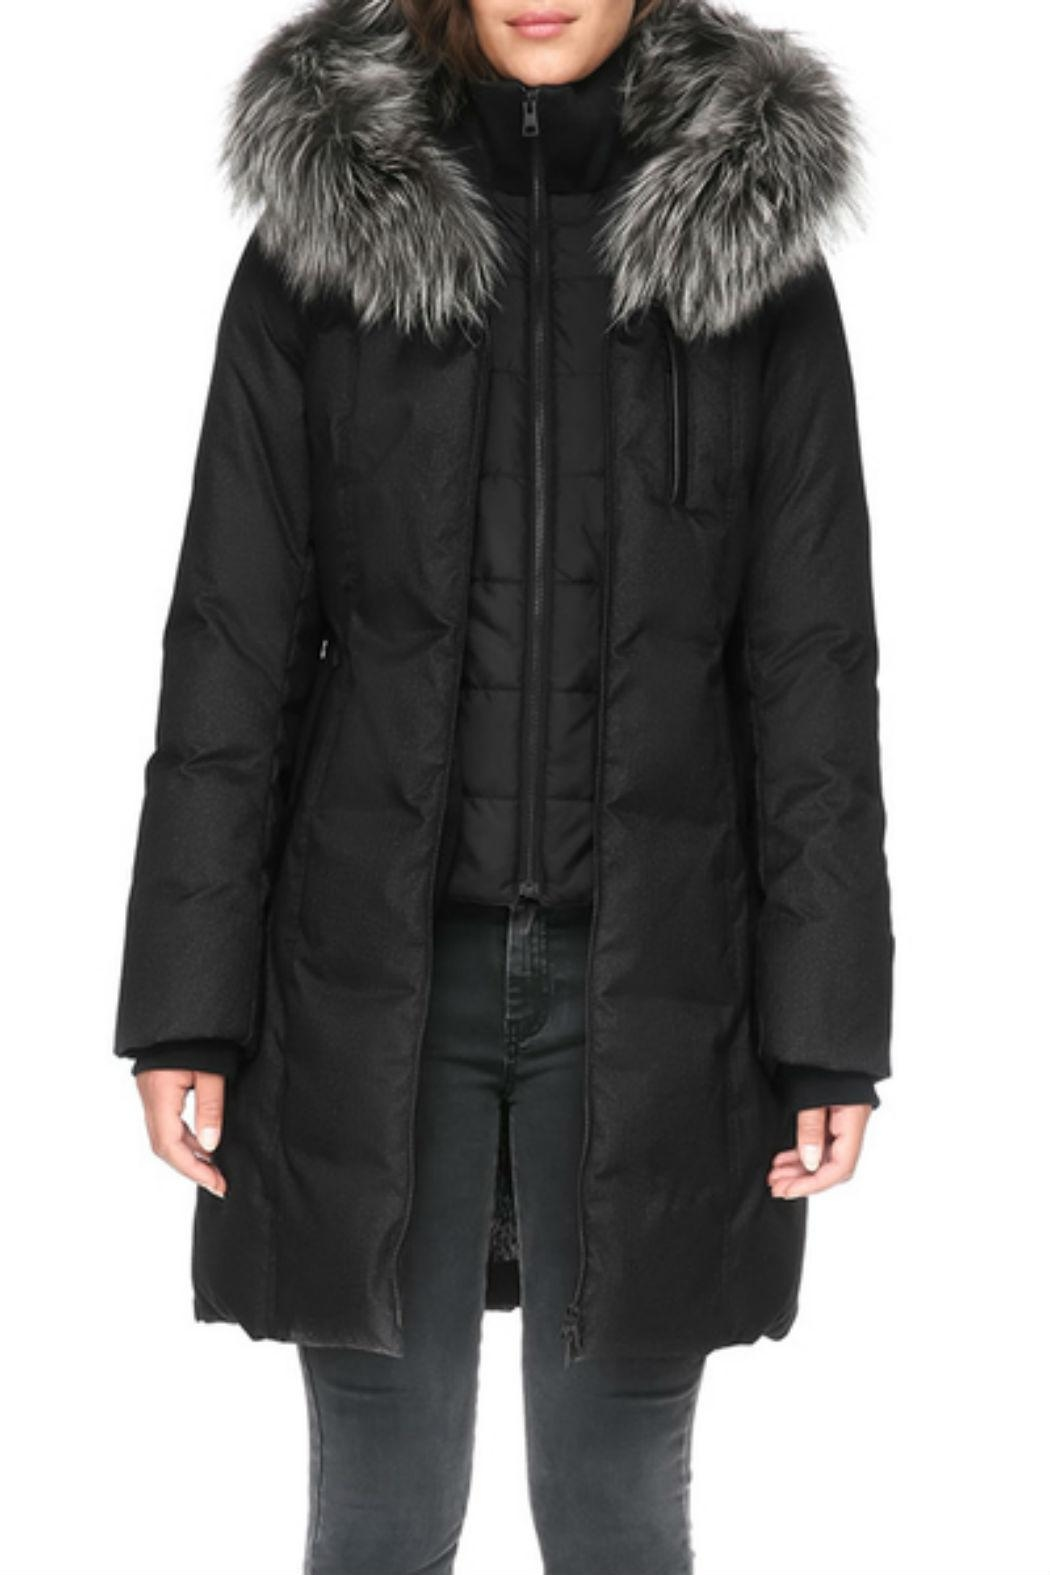 Soia & Kyo Chrissy-Fx Down Coat - Front Full Image